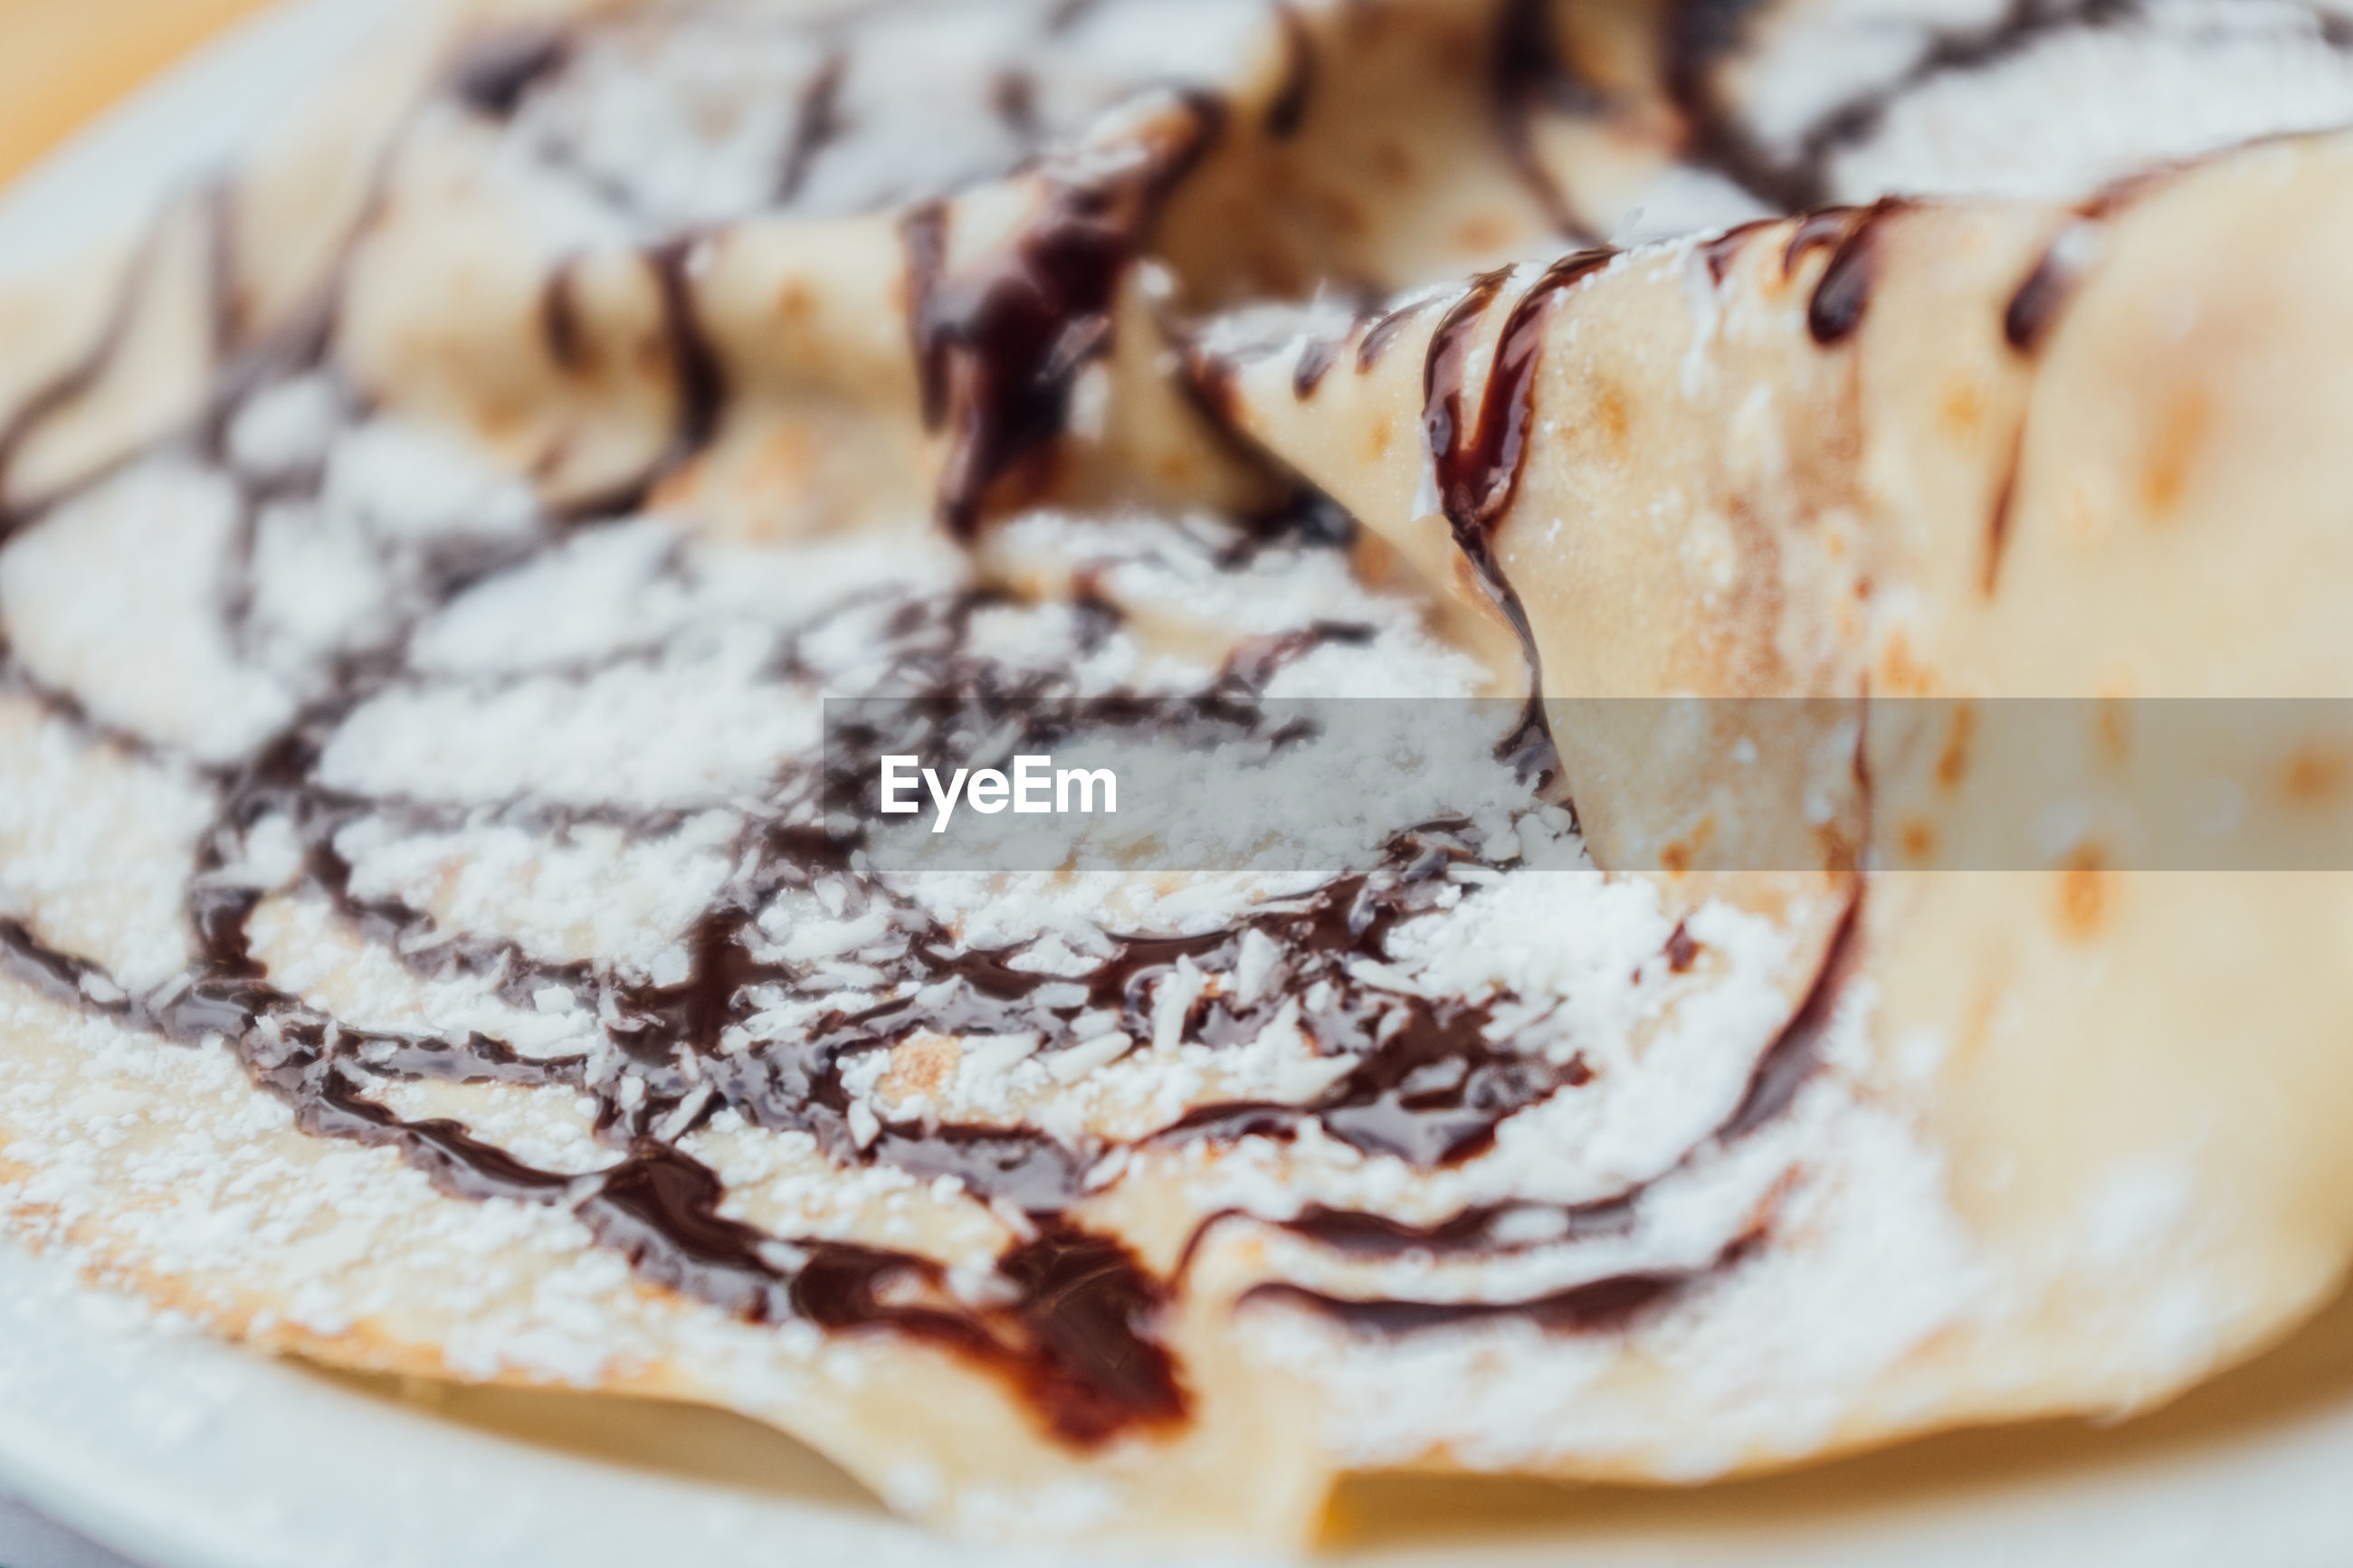 Extreme close up of crepes